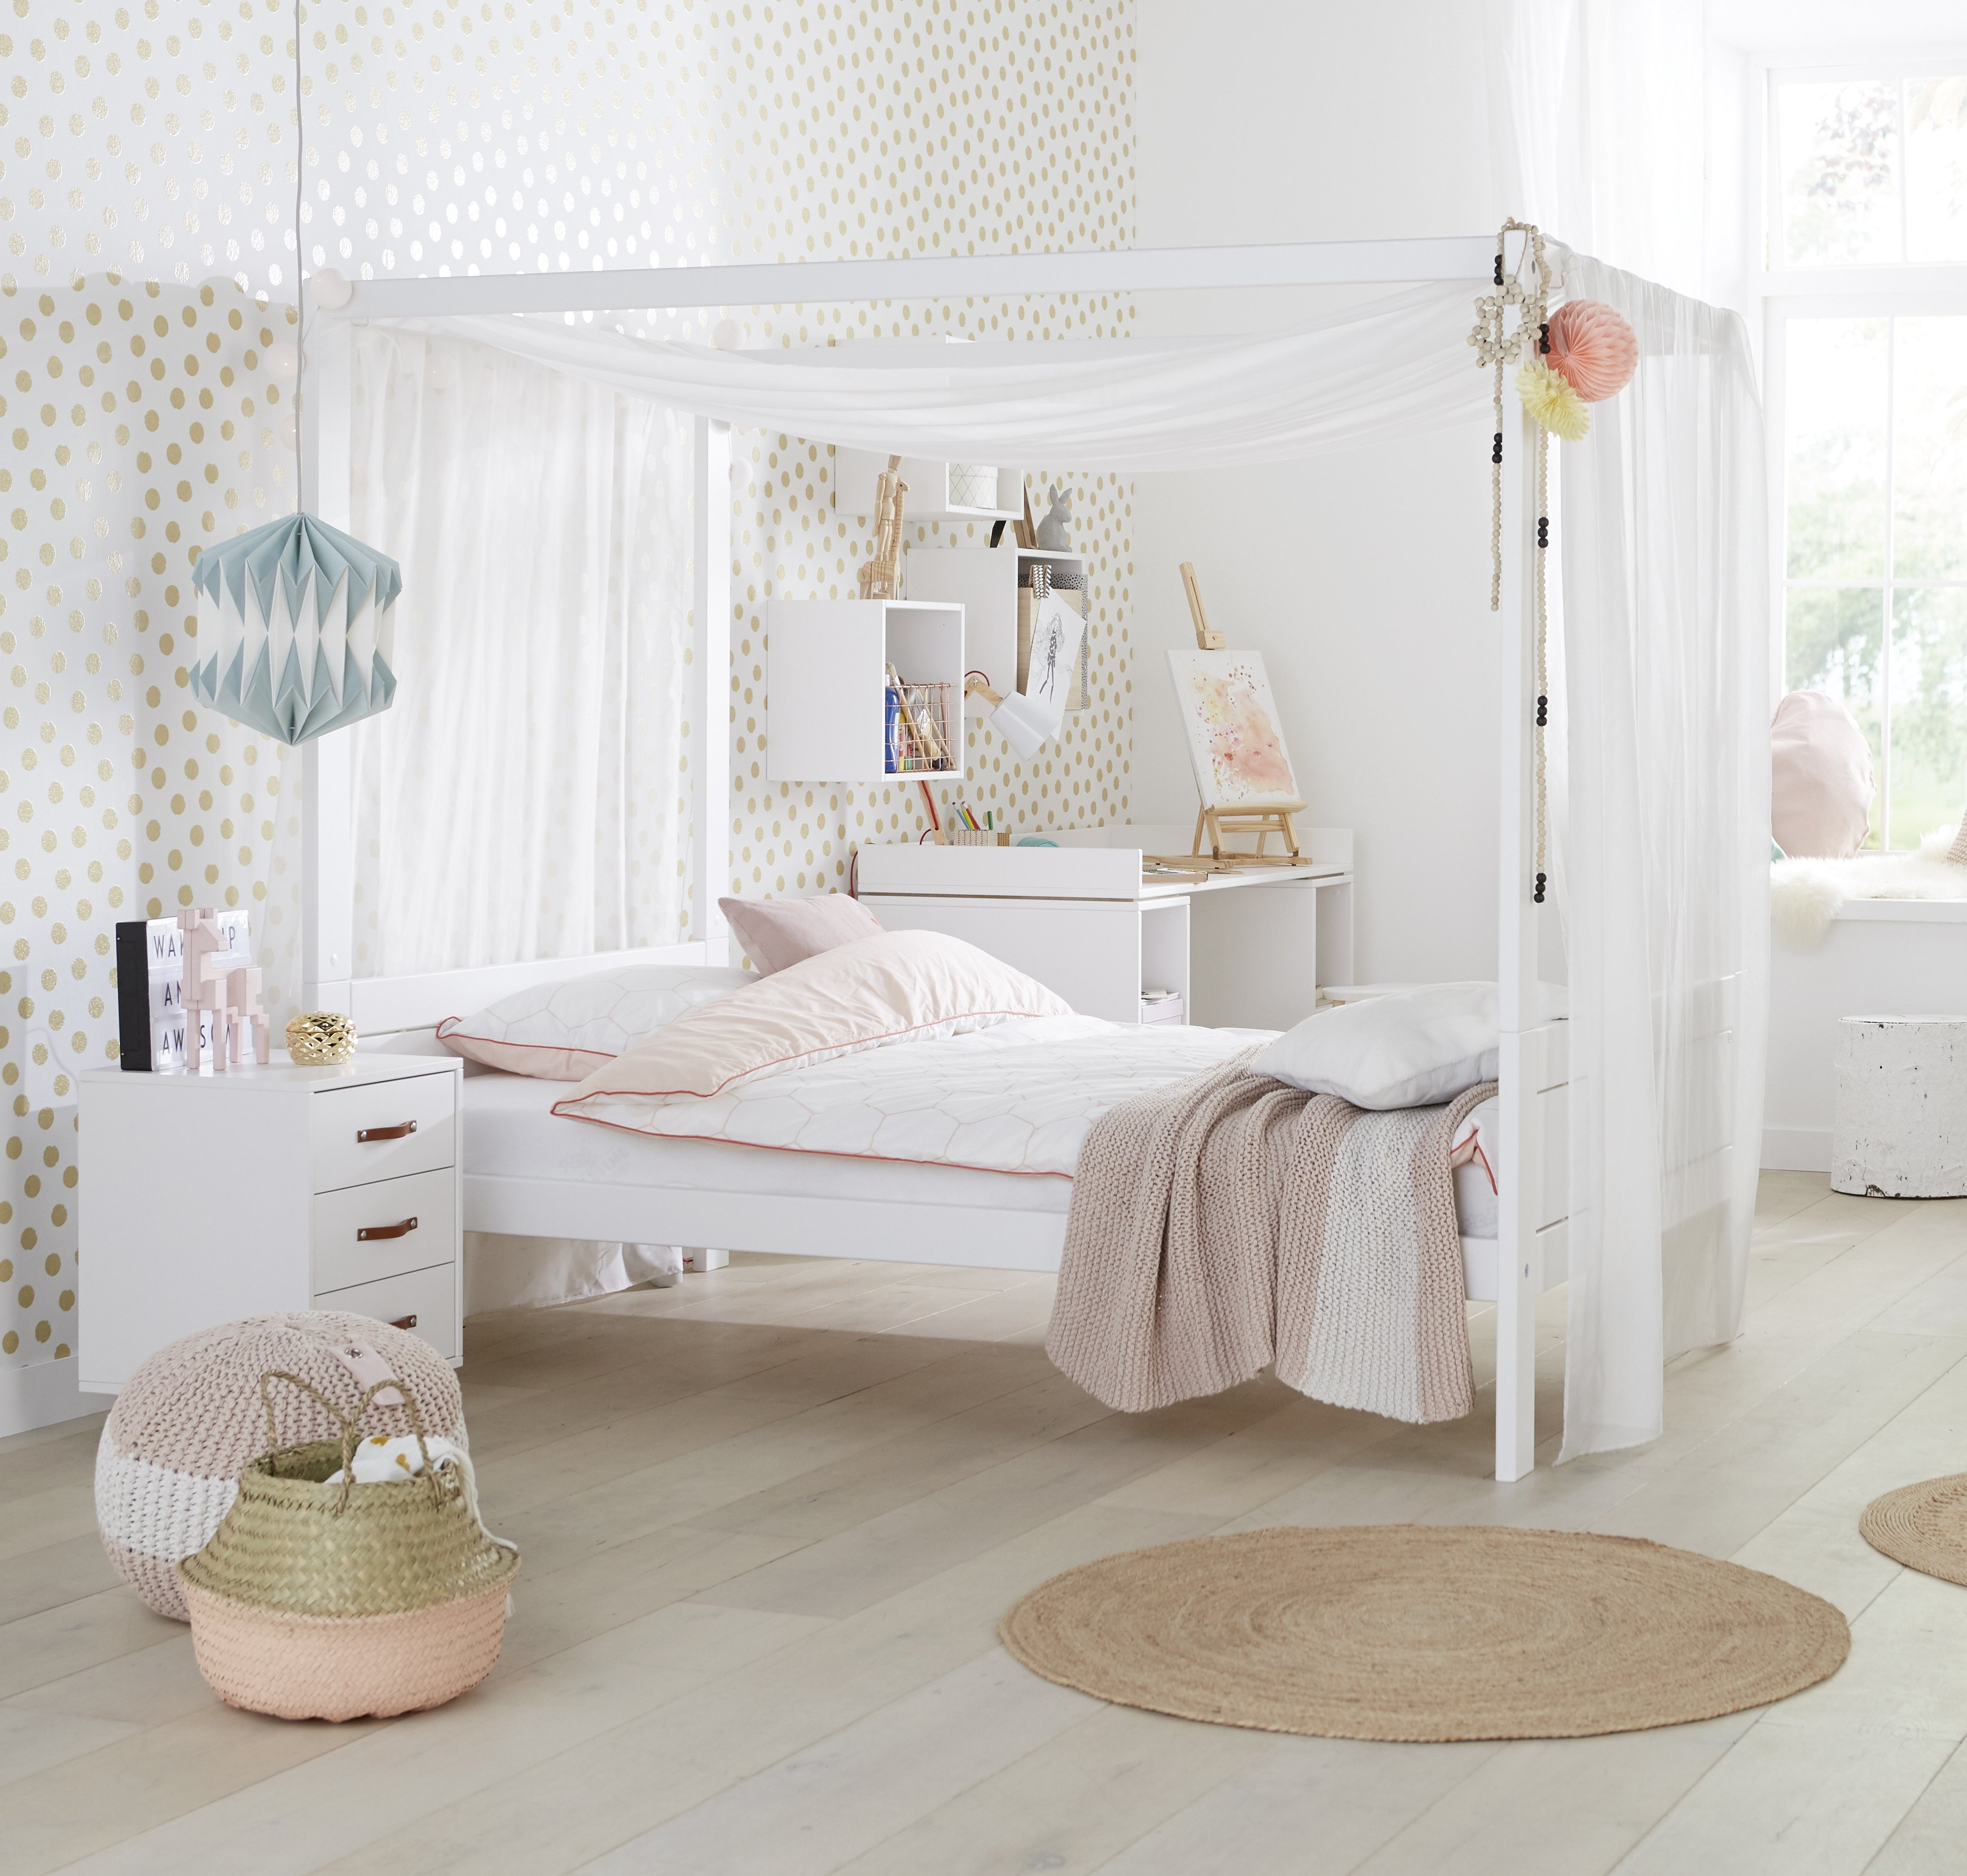 Four Poster Bed With Canopy 3 4